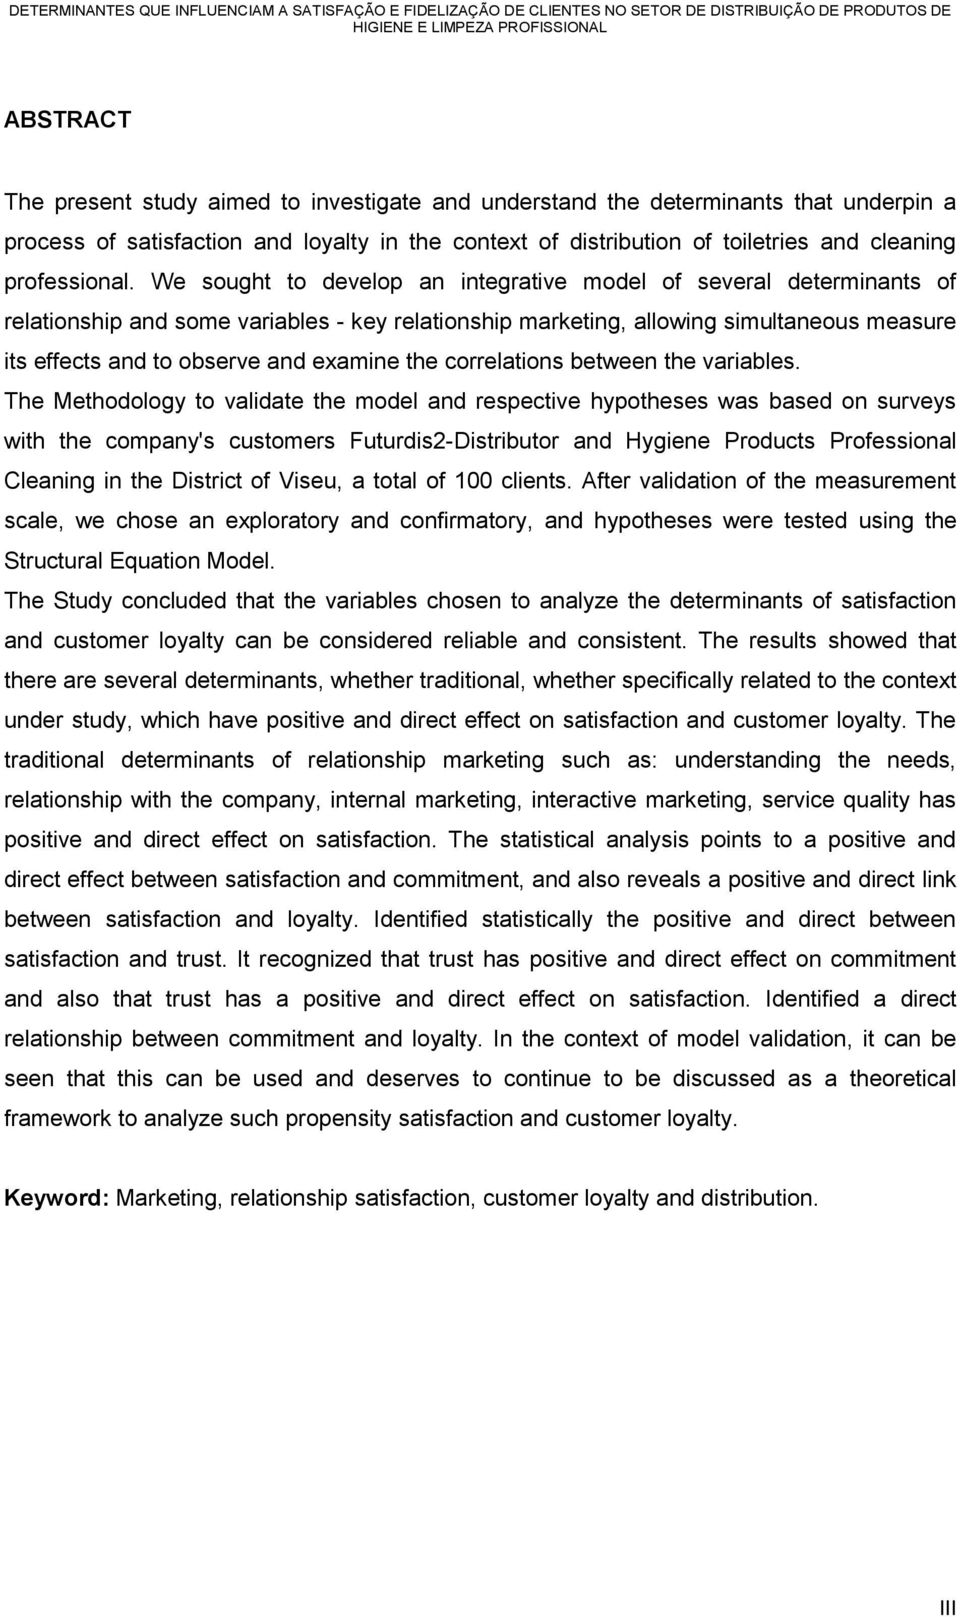 We sought to develop an integrative model of several determinants of relationship and some variables - key relationship marketing, allowing simultaneous measure its effects and to observe and examine